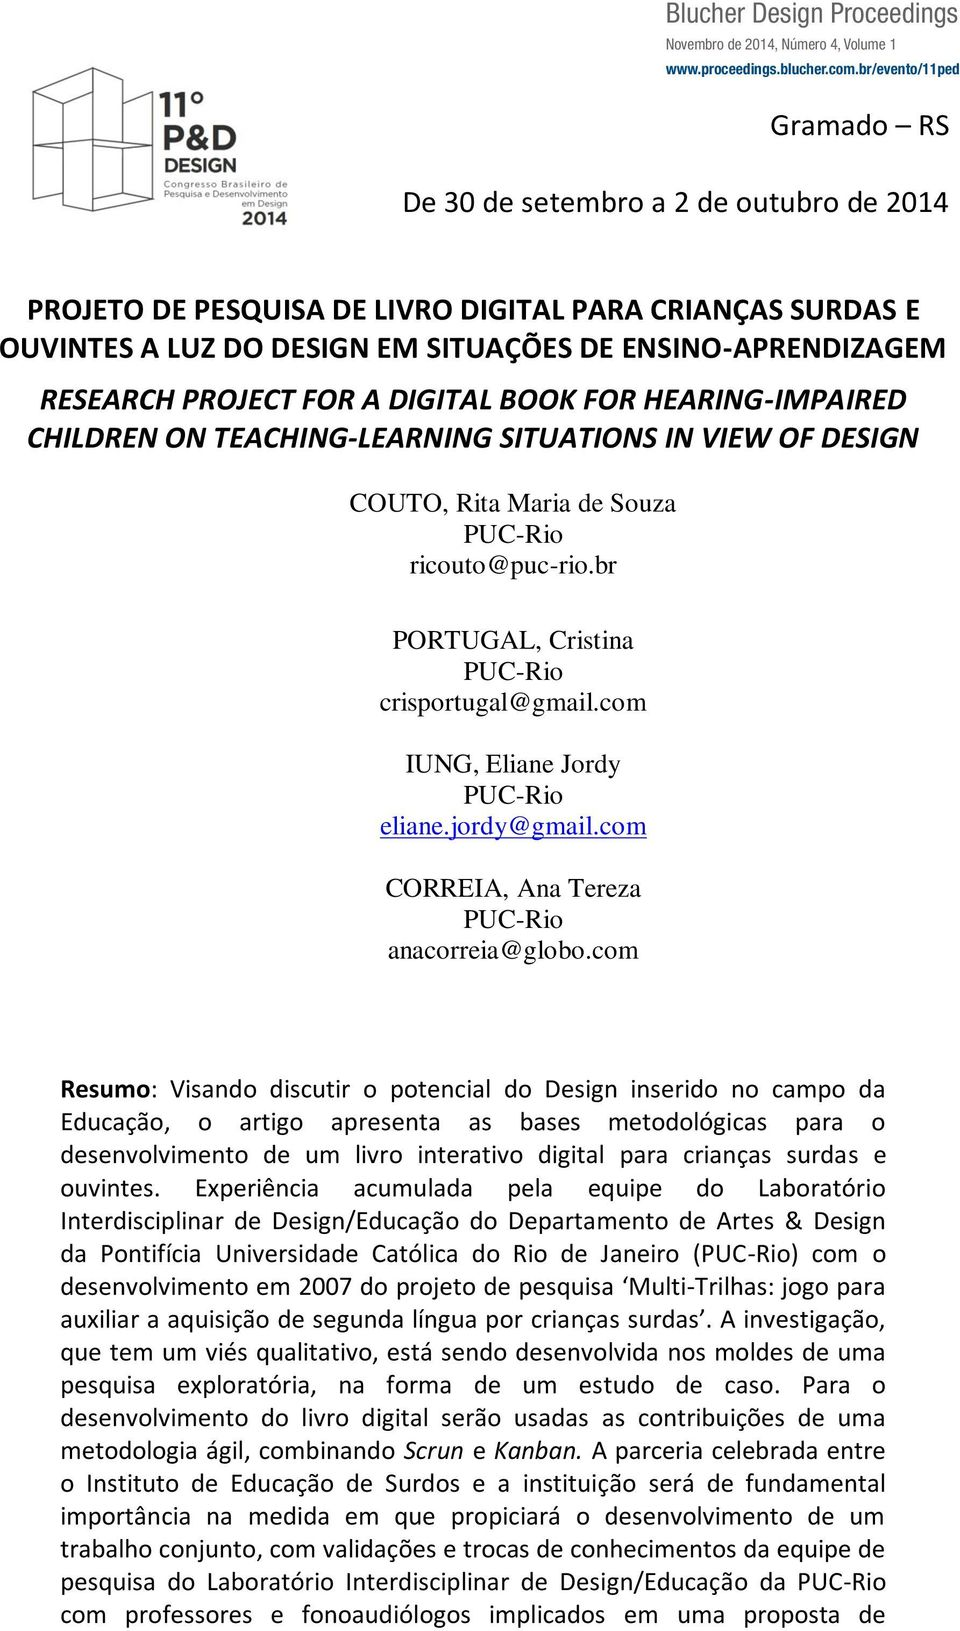 PROJECT FOR A DIGITAL BOOK FOR HEARING-IMPAIRED CHILDREN ON TEACHING-LEARNING SITUATIONS IN VIEW OF DESIGN COUTO, Rita Maria de Souza PUC-Rio ricouto@puc-rio.